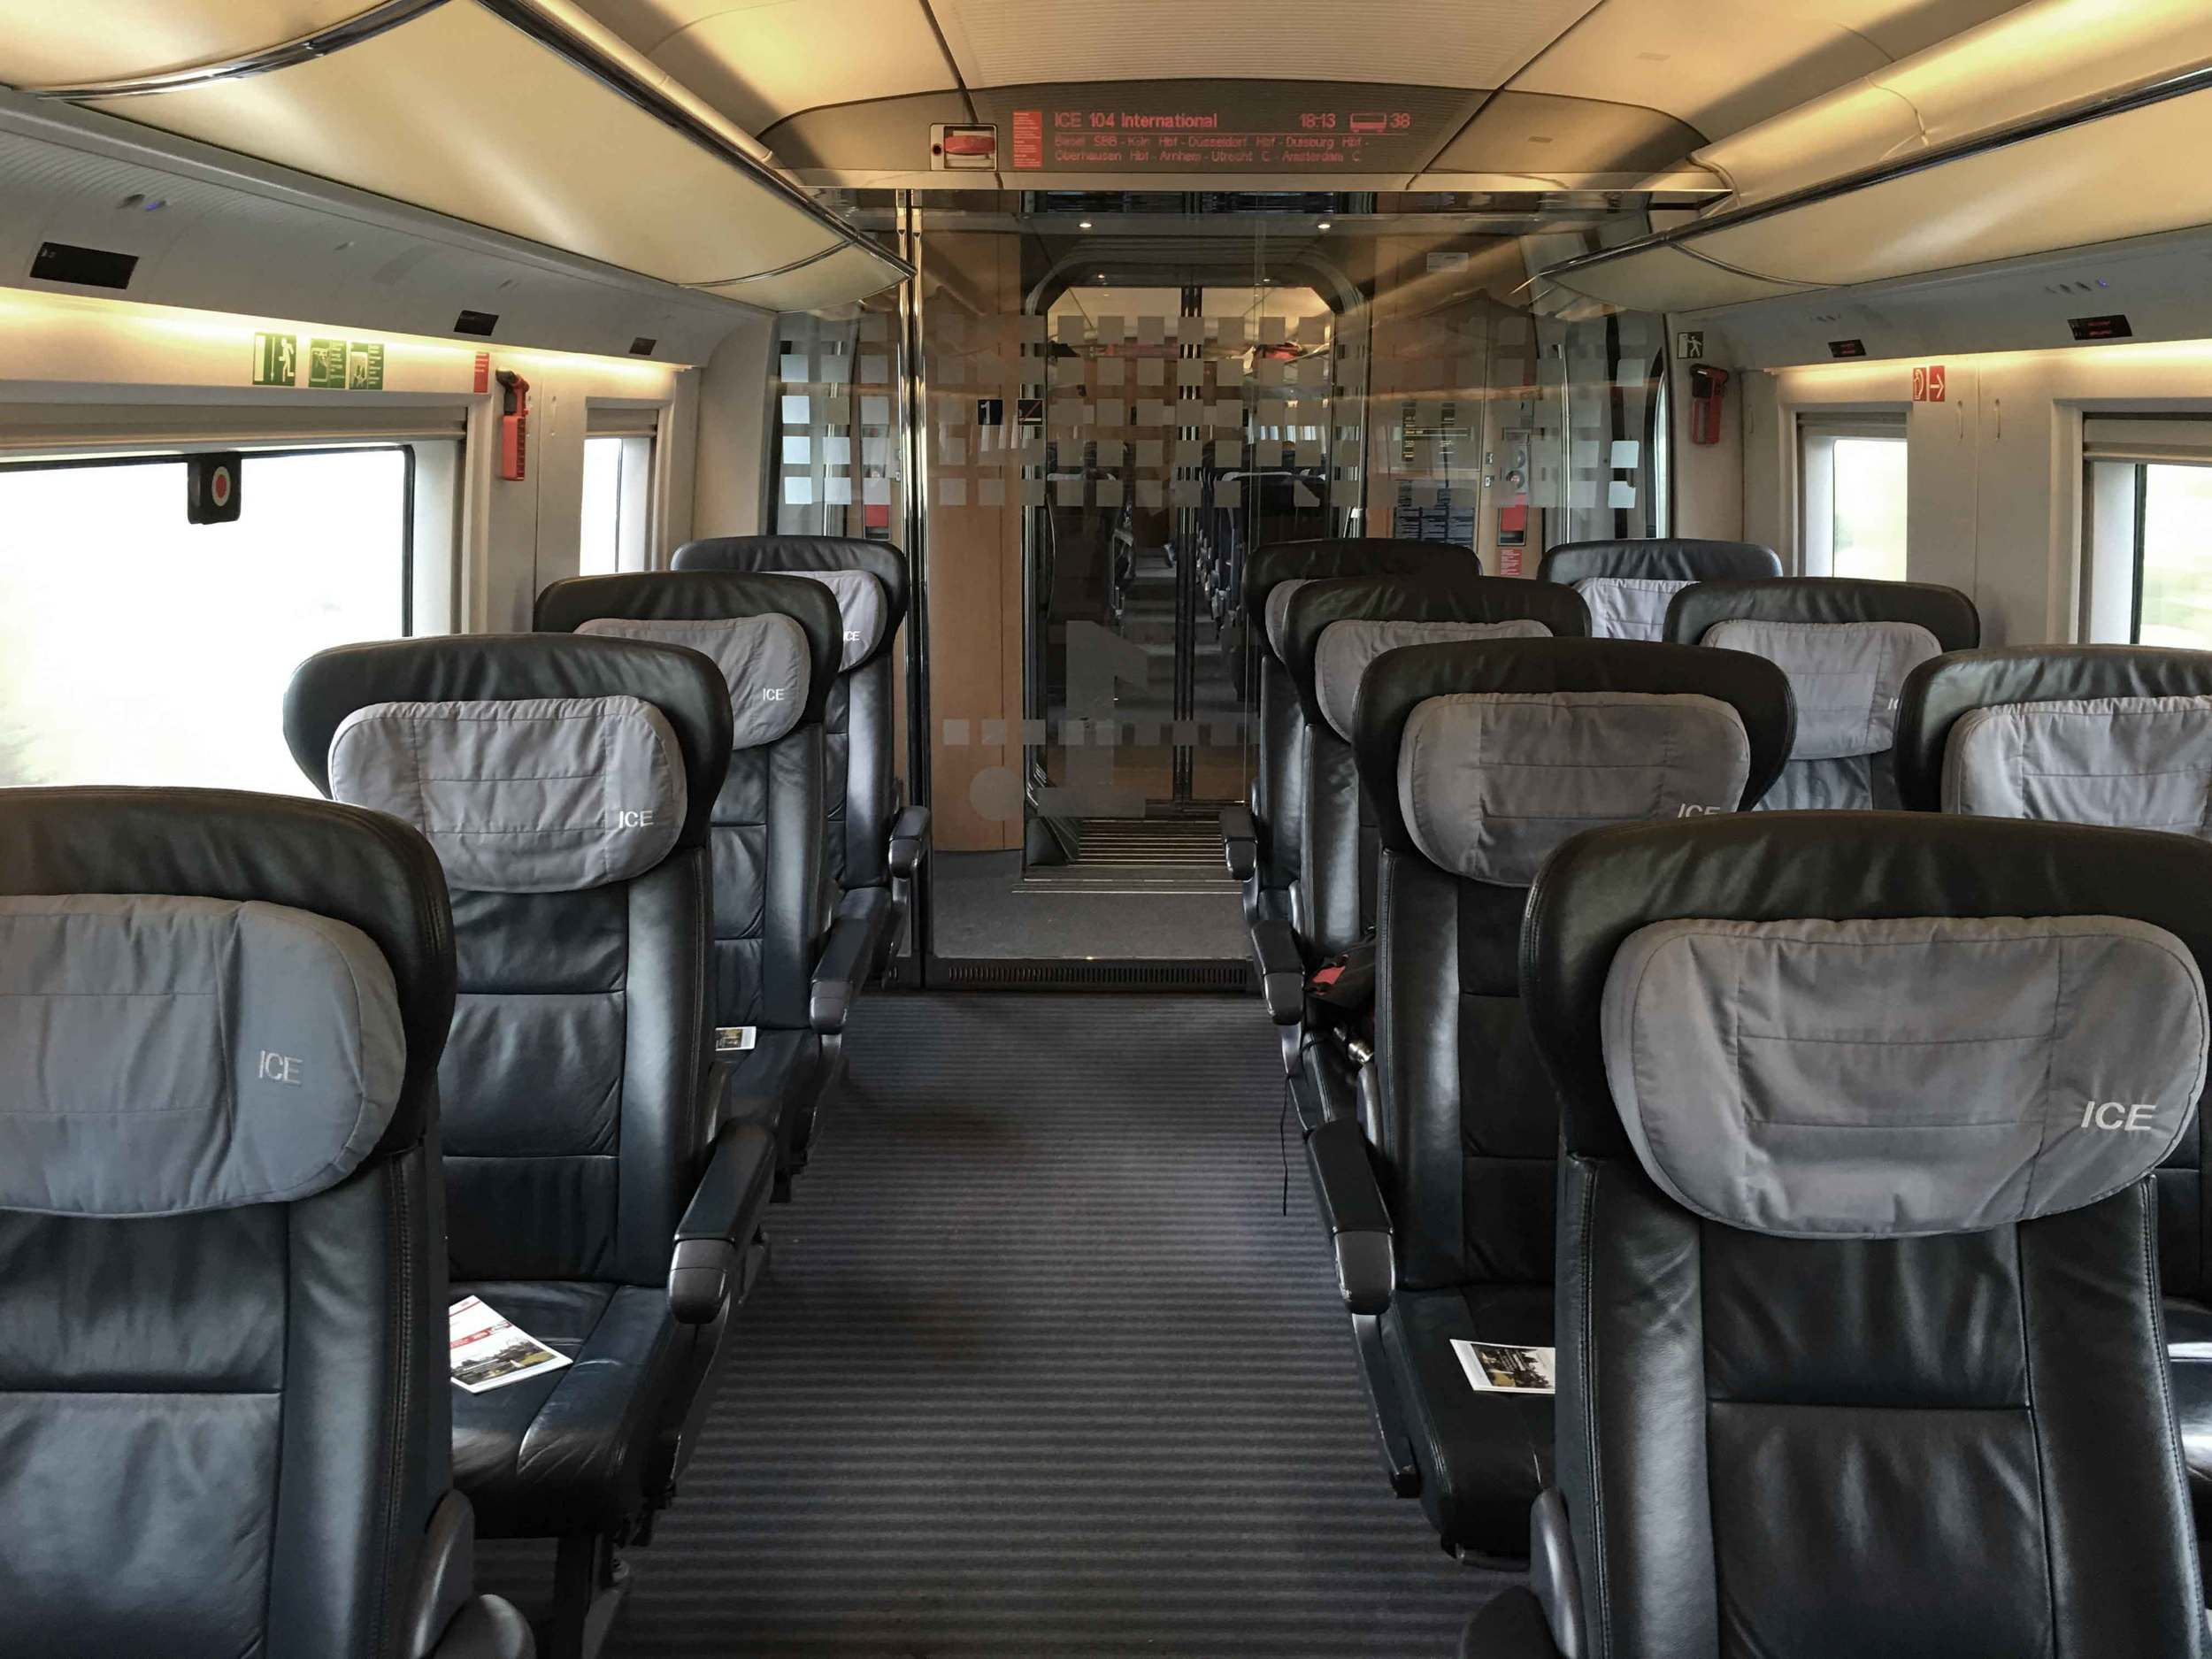 First class compartment, German ICE train, Inter City Express, Deutsche Bahn, Germany. Image©sourcingstyle.com